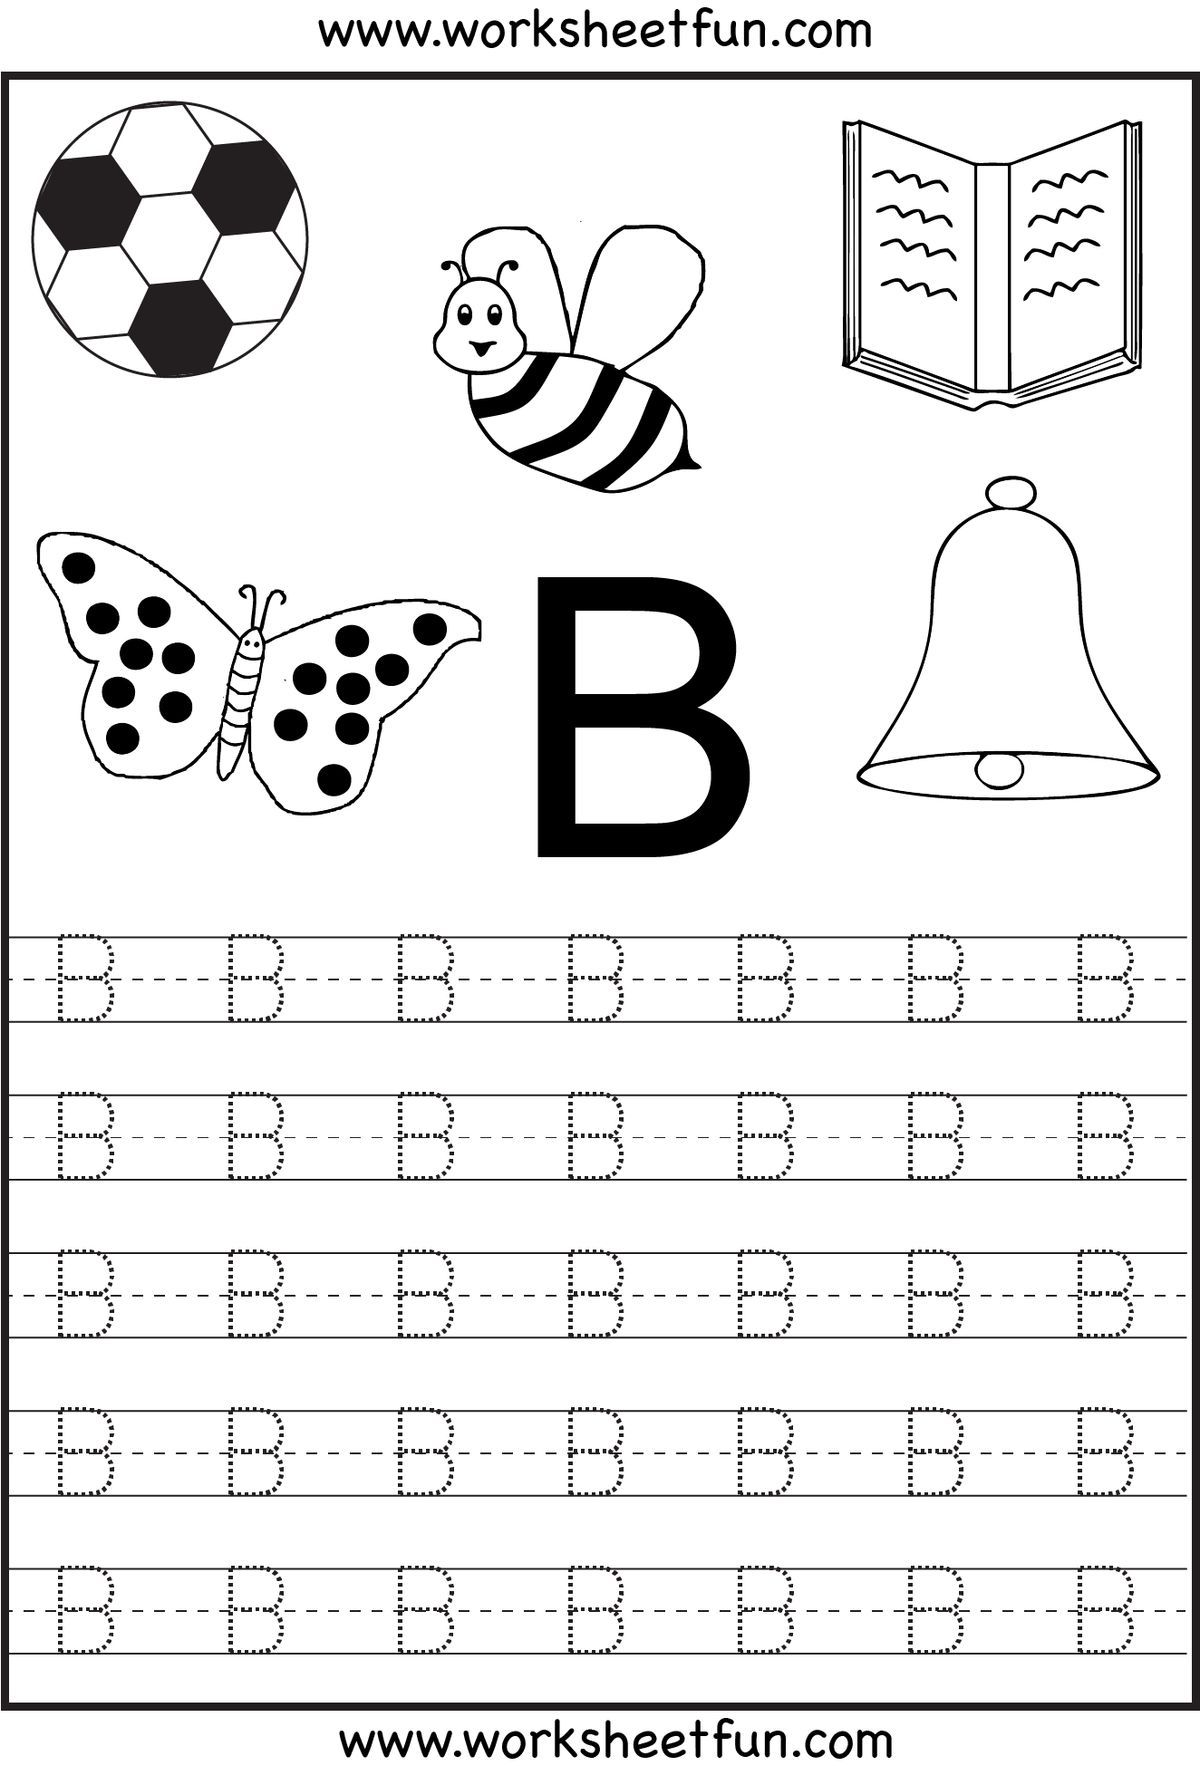 Free Printable Worksheets January